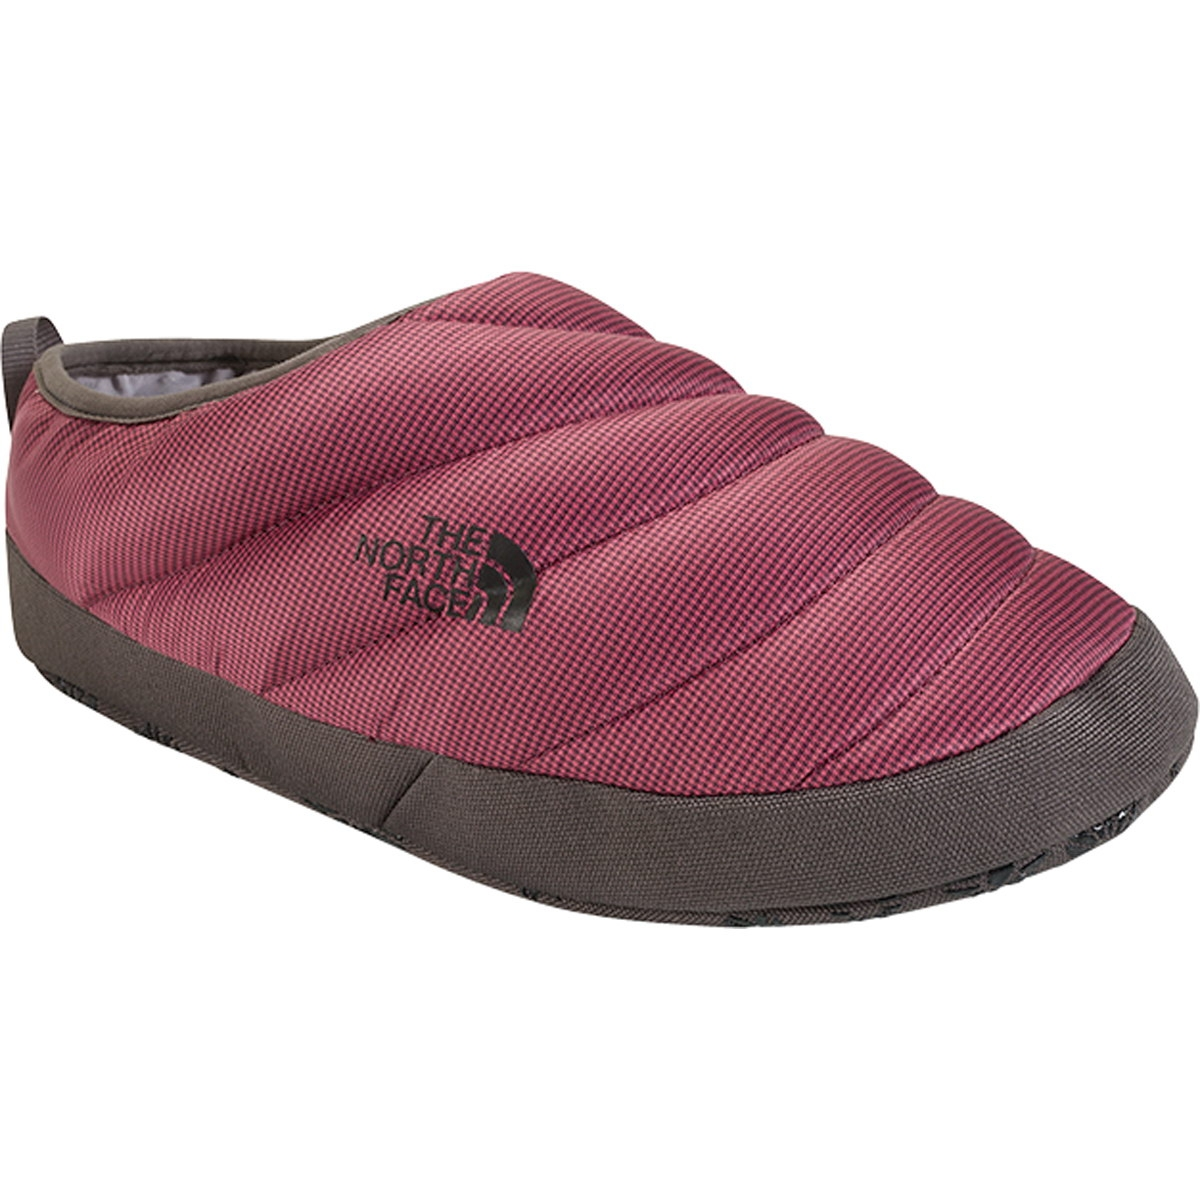 The North Face Angebote –  45 Prozent Rabatt auf The North Face Women's NSE Tent Mule III – Hüttenschuh